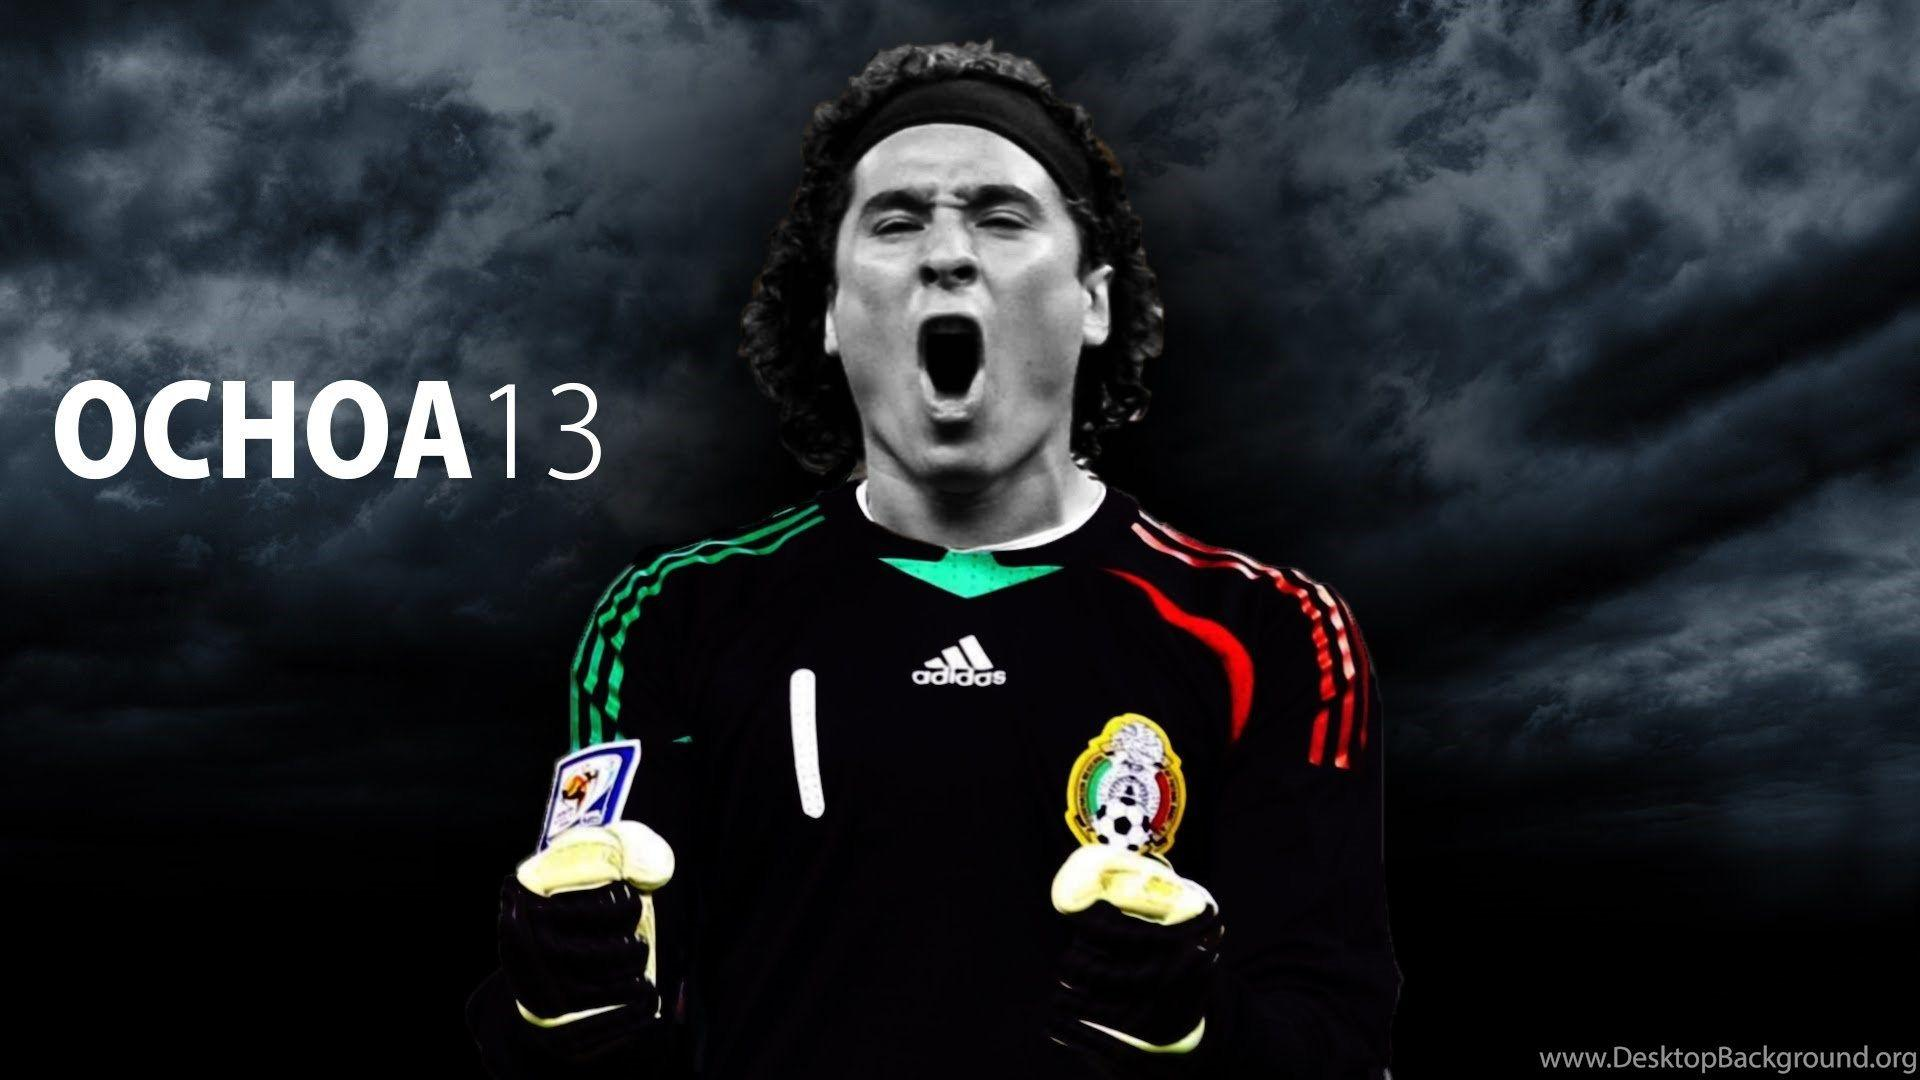 Guillermo ochoa wallpapers wallpaper cave - Guillermo ochoa wallpaper ...